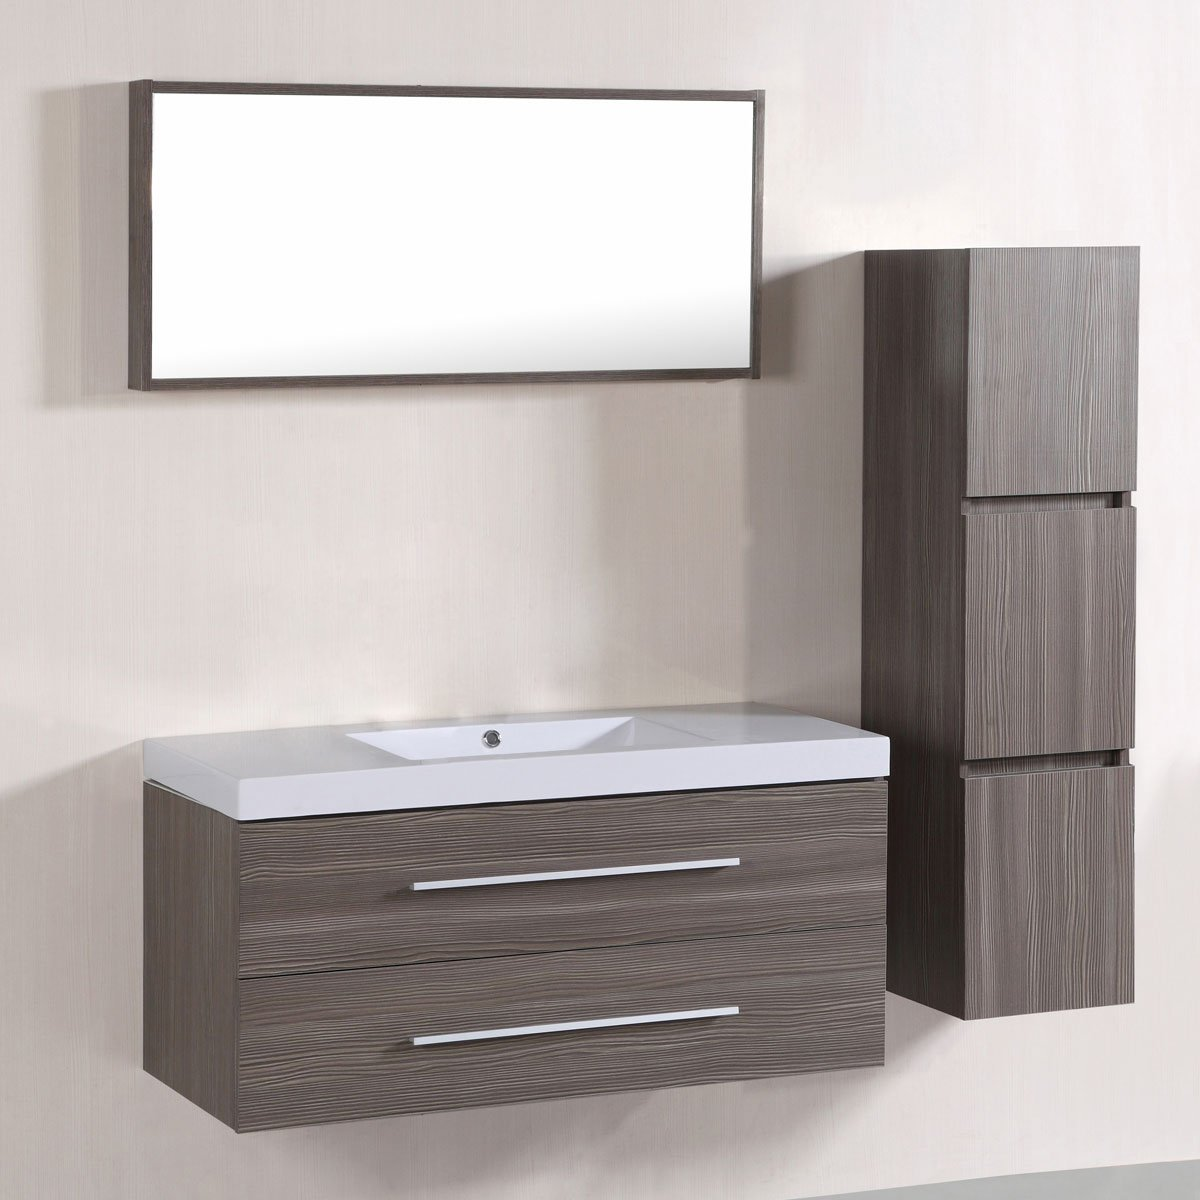 BHBL 40 In. Wall Mount Bathroom Vanity Set with Single Sink and Mirror (C-T5167A)